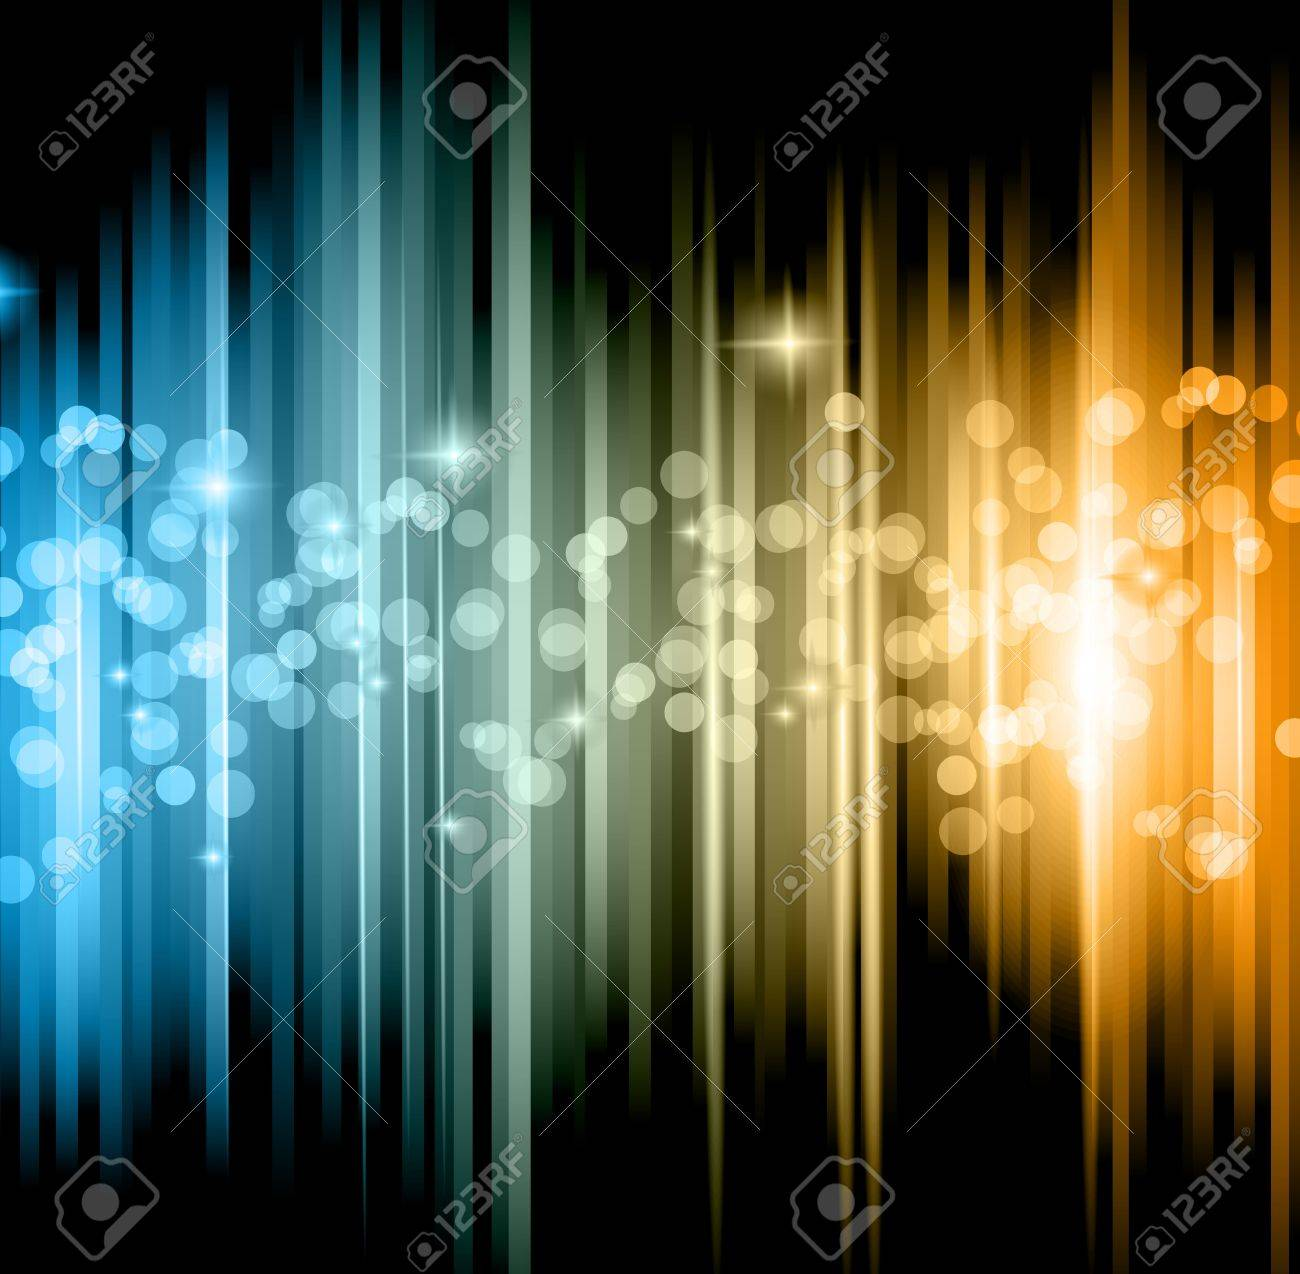 Abstract futuristic background with striped lights and a flow of sparkling stars. Stock Vector - 14853081